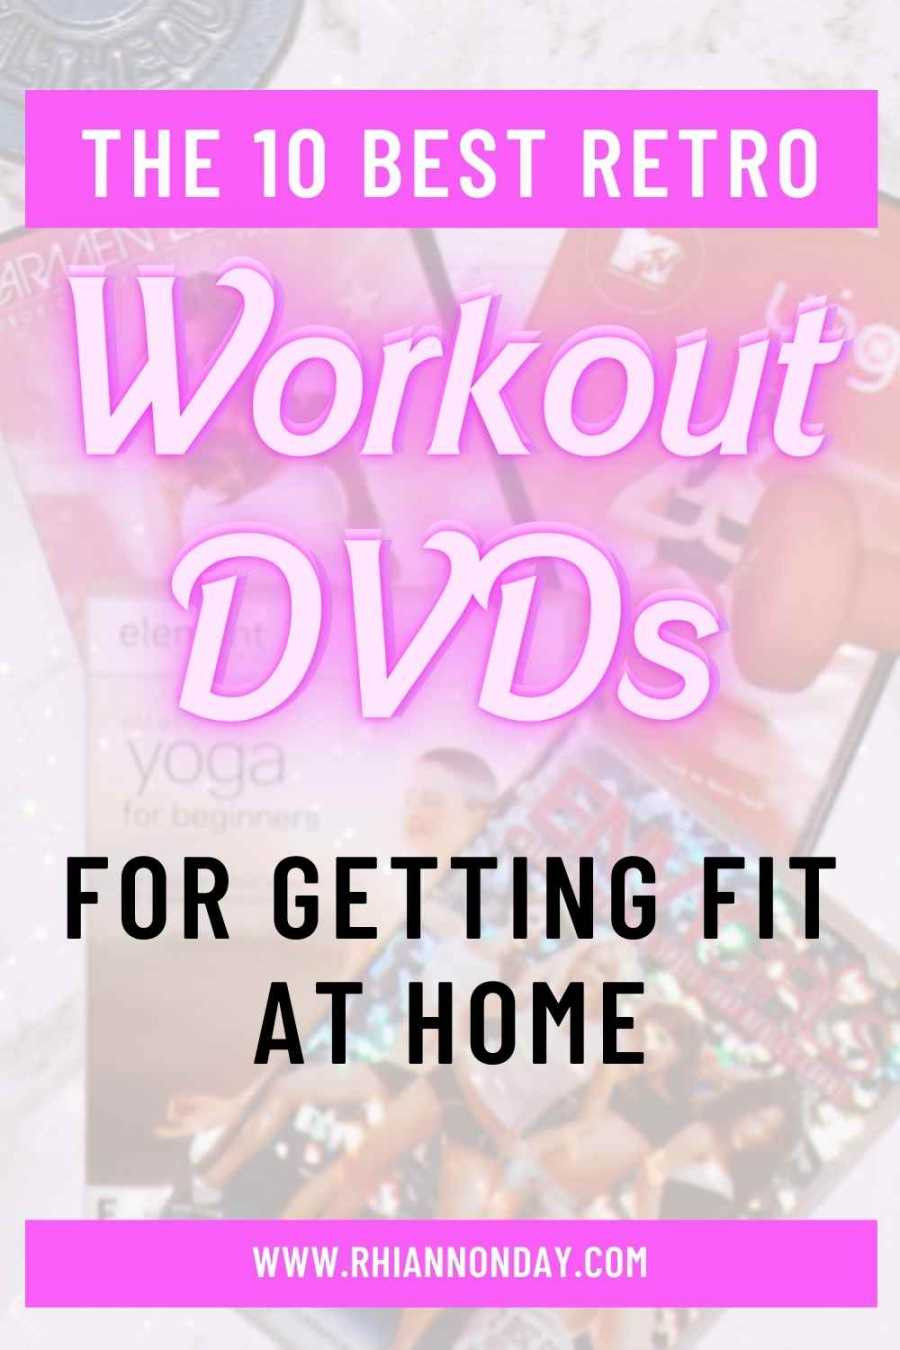 Can't get to a gym?  Let's get fit the old fashioned way: with some amazing retro fitness DVDs I personally guarantee will help you lose weight, get fit and get stronger all from the privacy of your own home. #retroworkout #janefonda #taebo #fitness #fitnessdvd #weightloss #loseweight #womensfitness